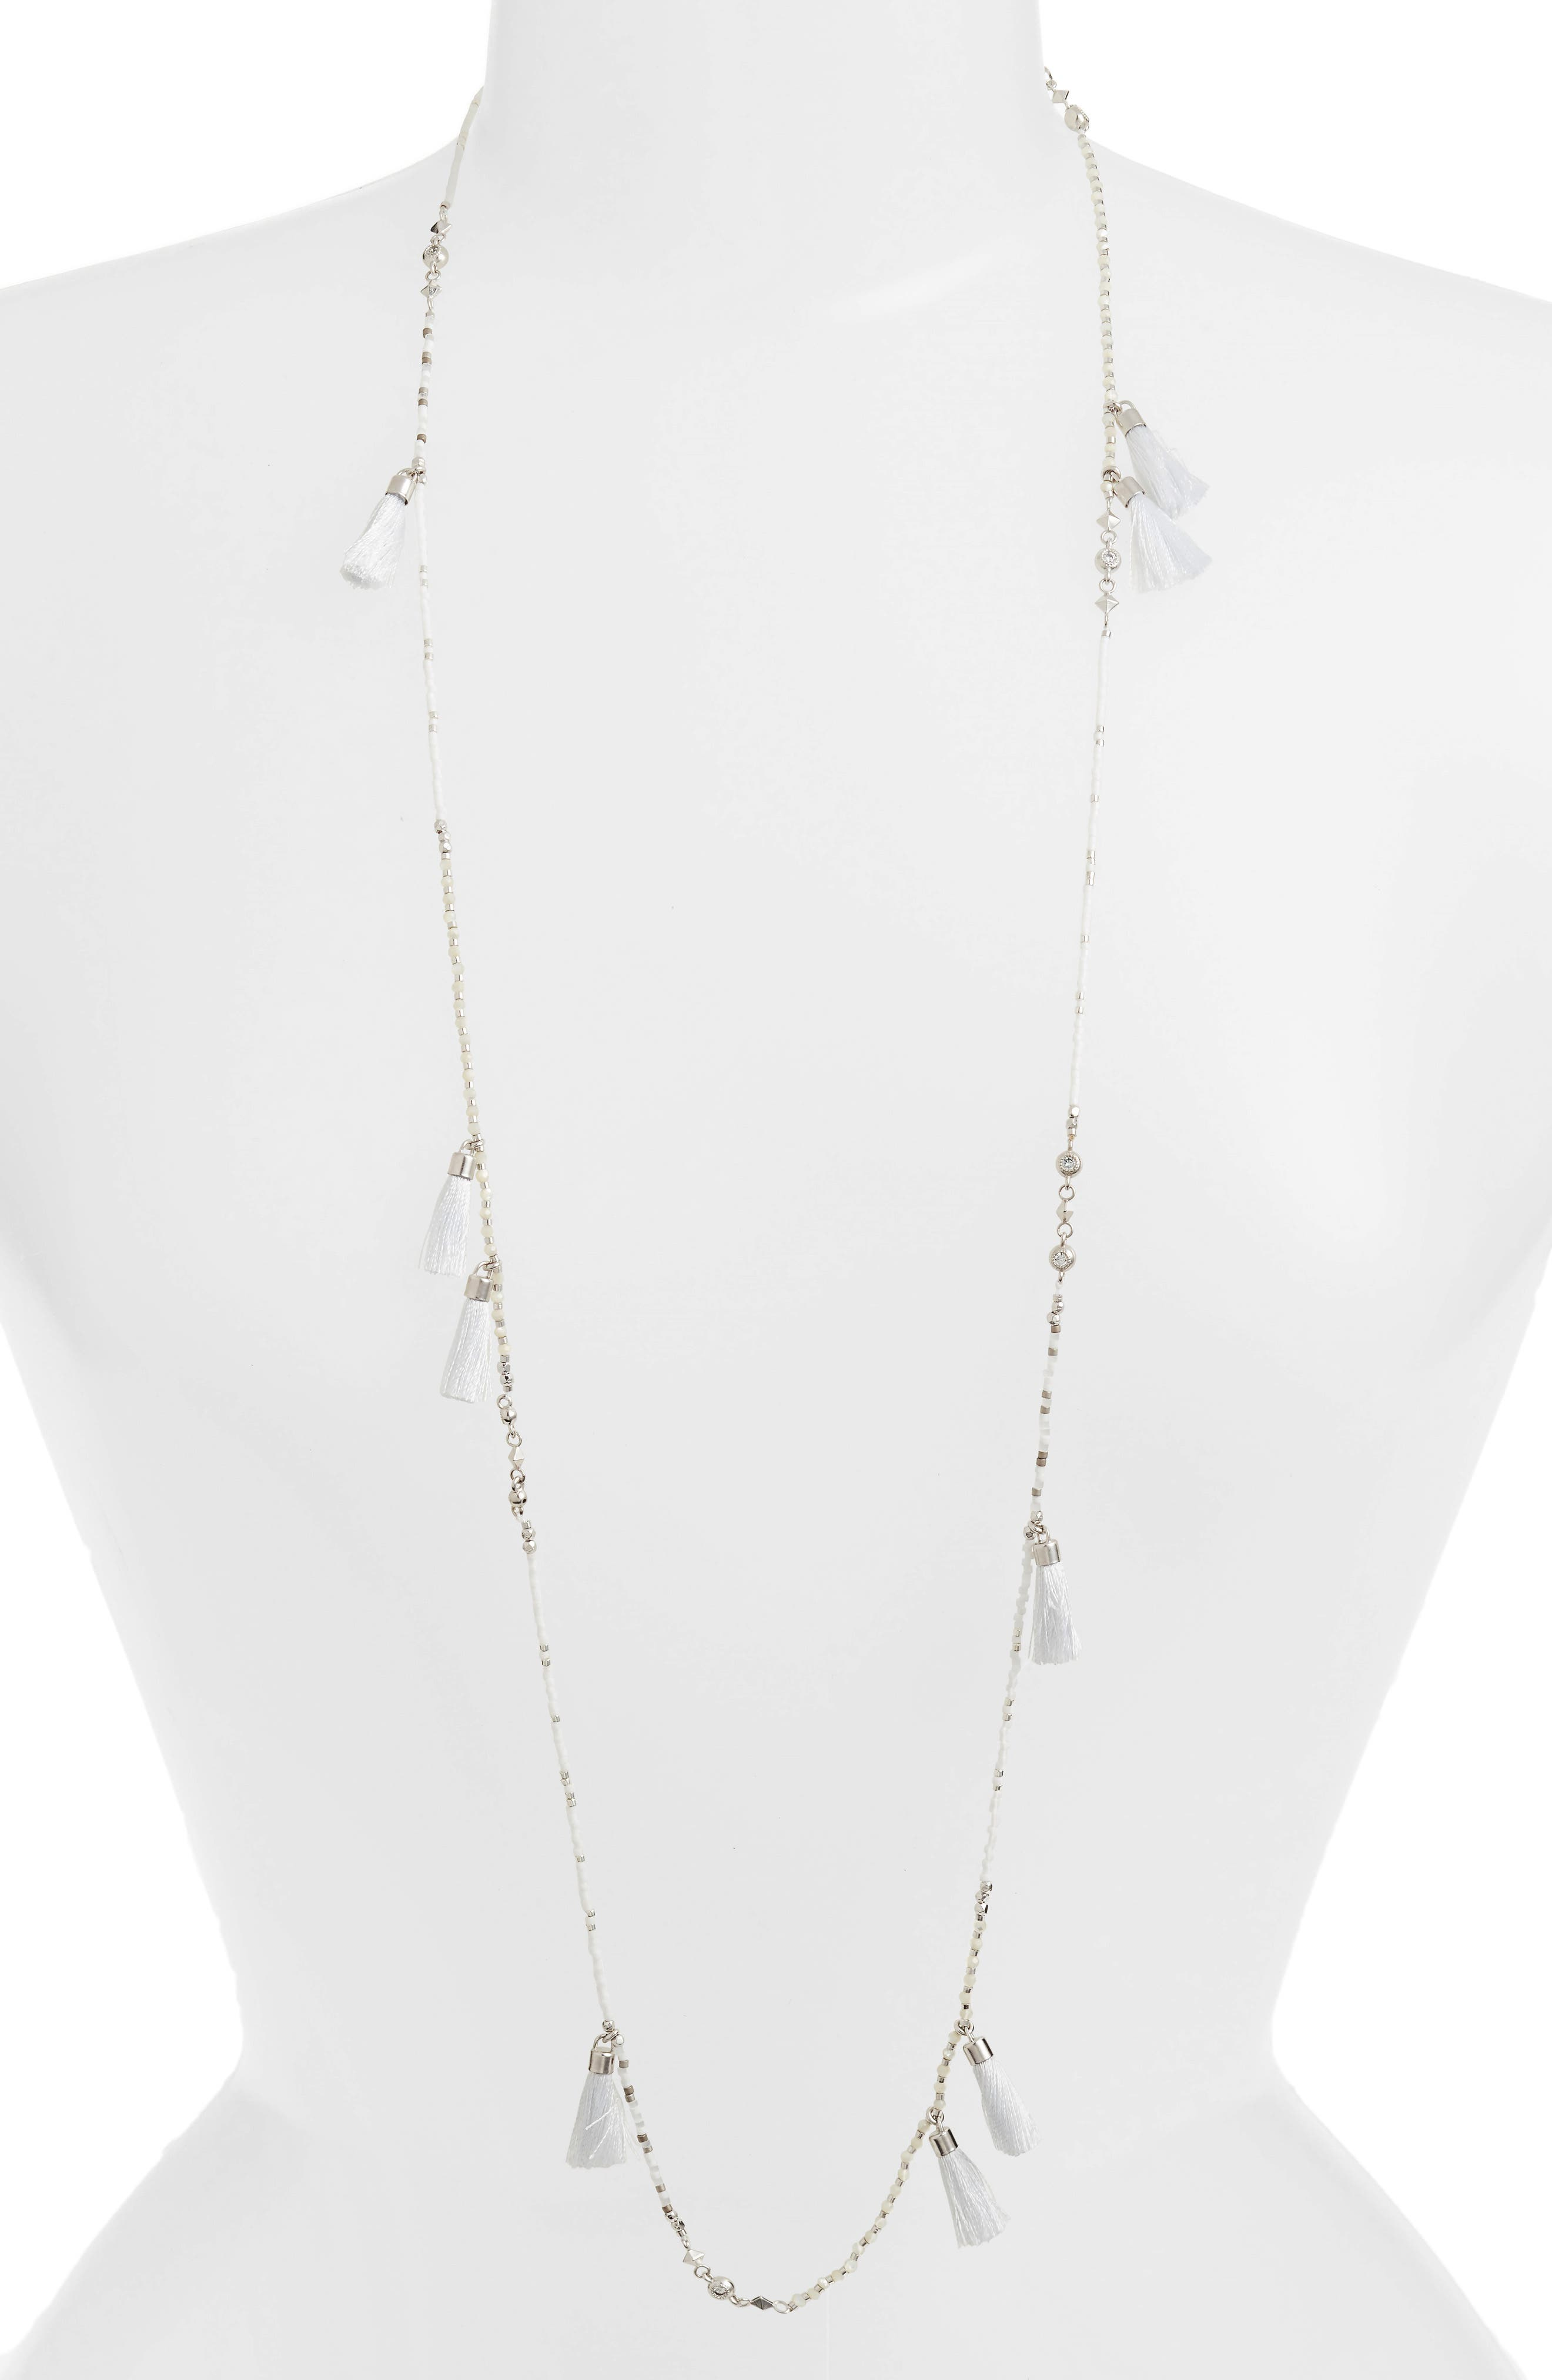 Augusta Tassel Necklace,                             Main thumbnail 1, color,                             100